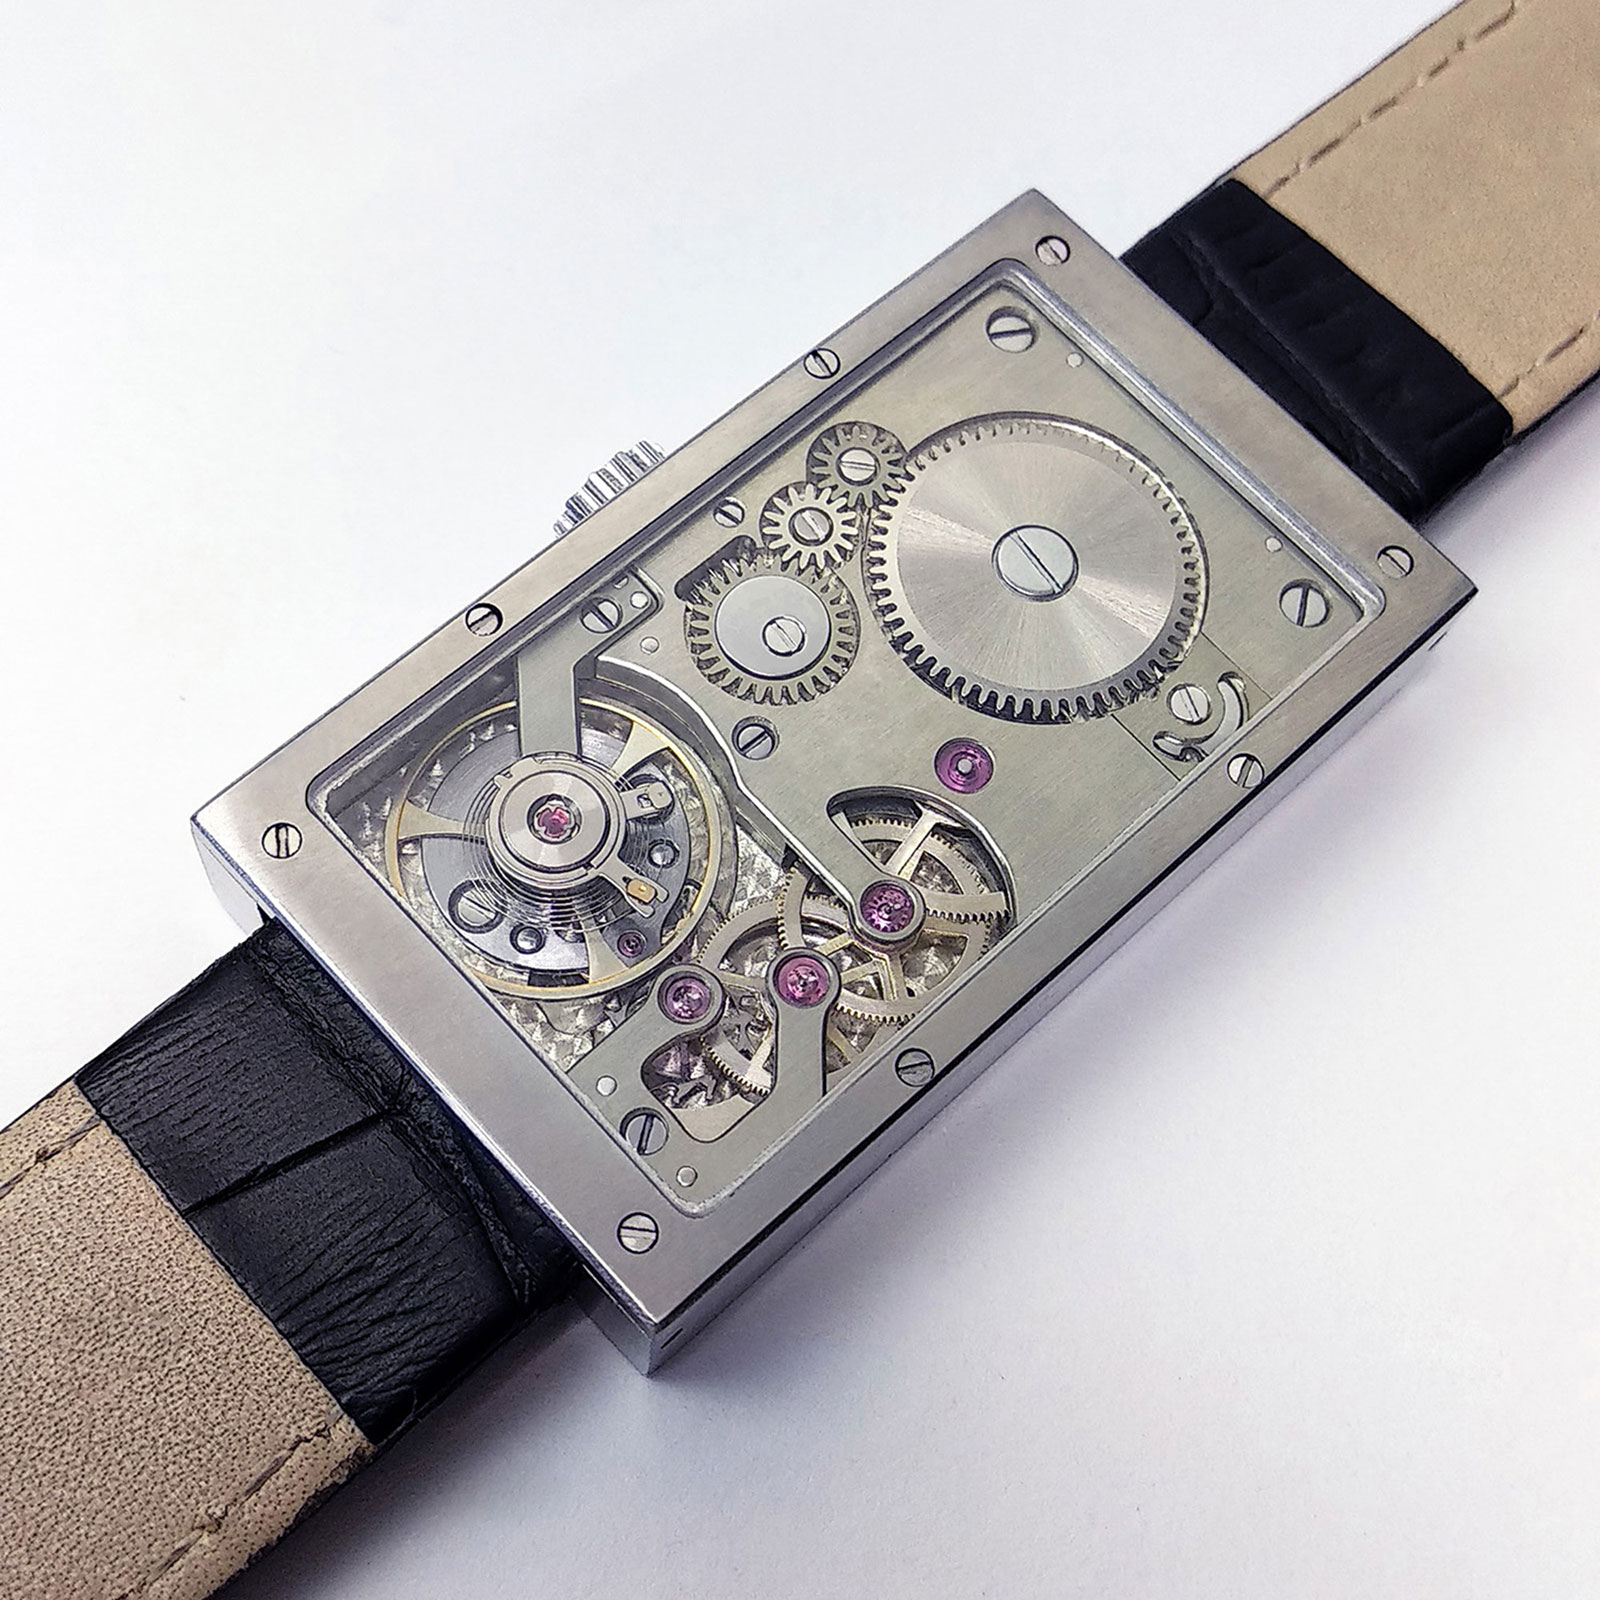 david lowinger series 2 regulator watch 4